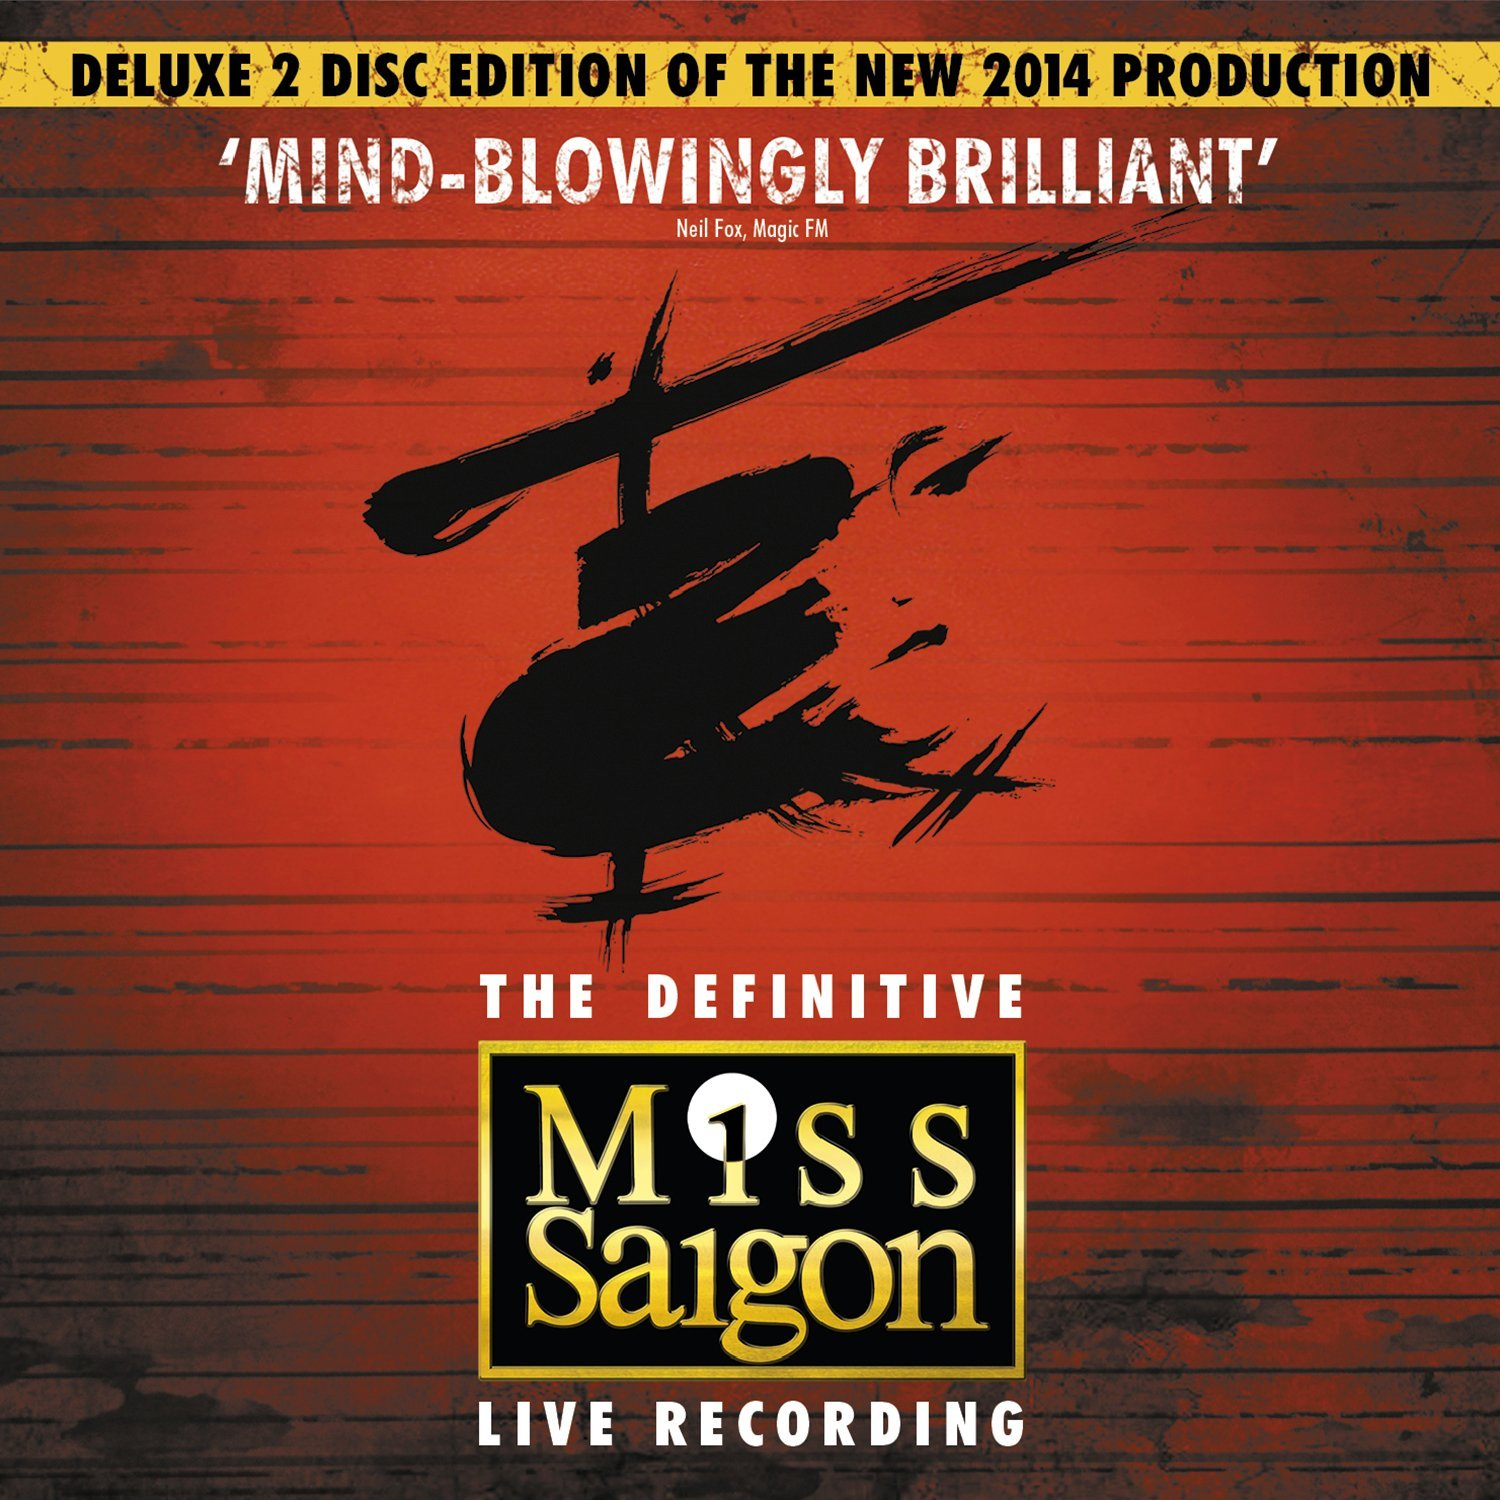 miss saigon west end with Miss Saigon The Definitive Live Recording 2014 Polydor Group on Miss Saigon The Definitive Live Recording 2014 Polydor Group additionally 117176 London Coliseum in addition Wysiwyg Modernises West End Theatre Lighting Design In Miss Saigon 1 moreover Wicked Catalan Language Resum together with Miss Saigon.